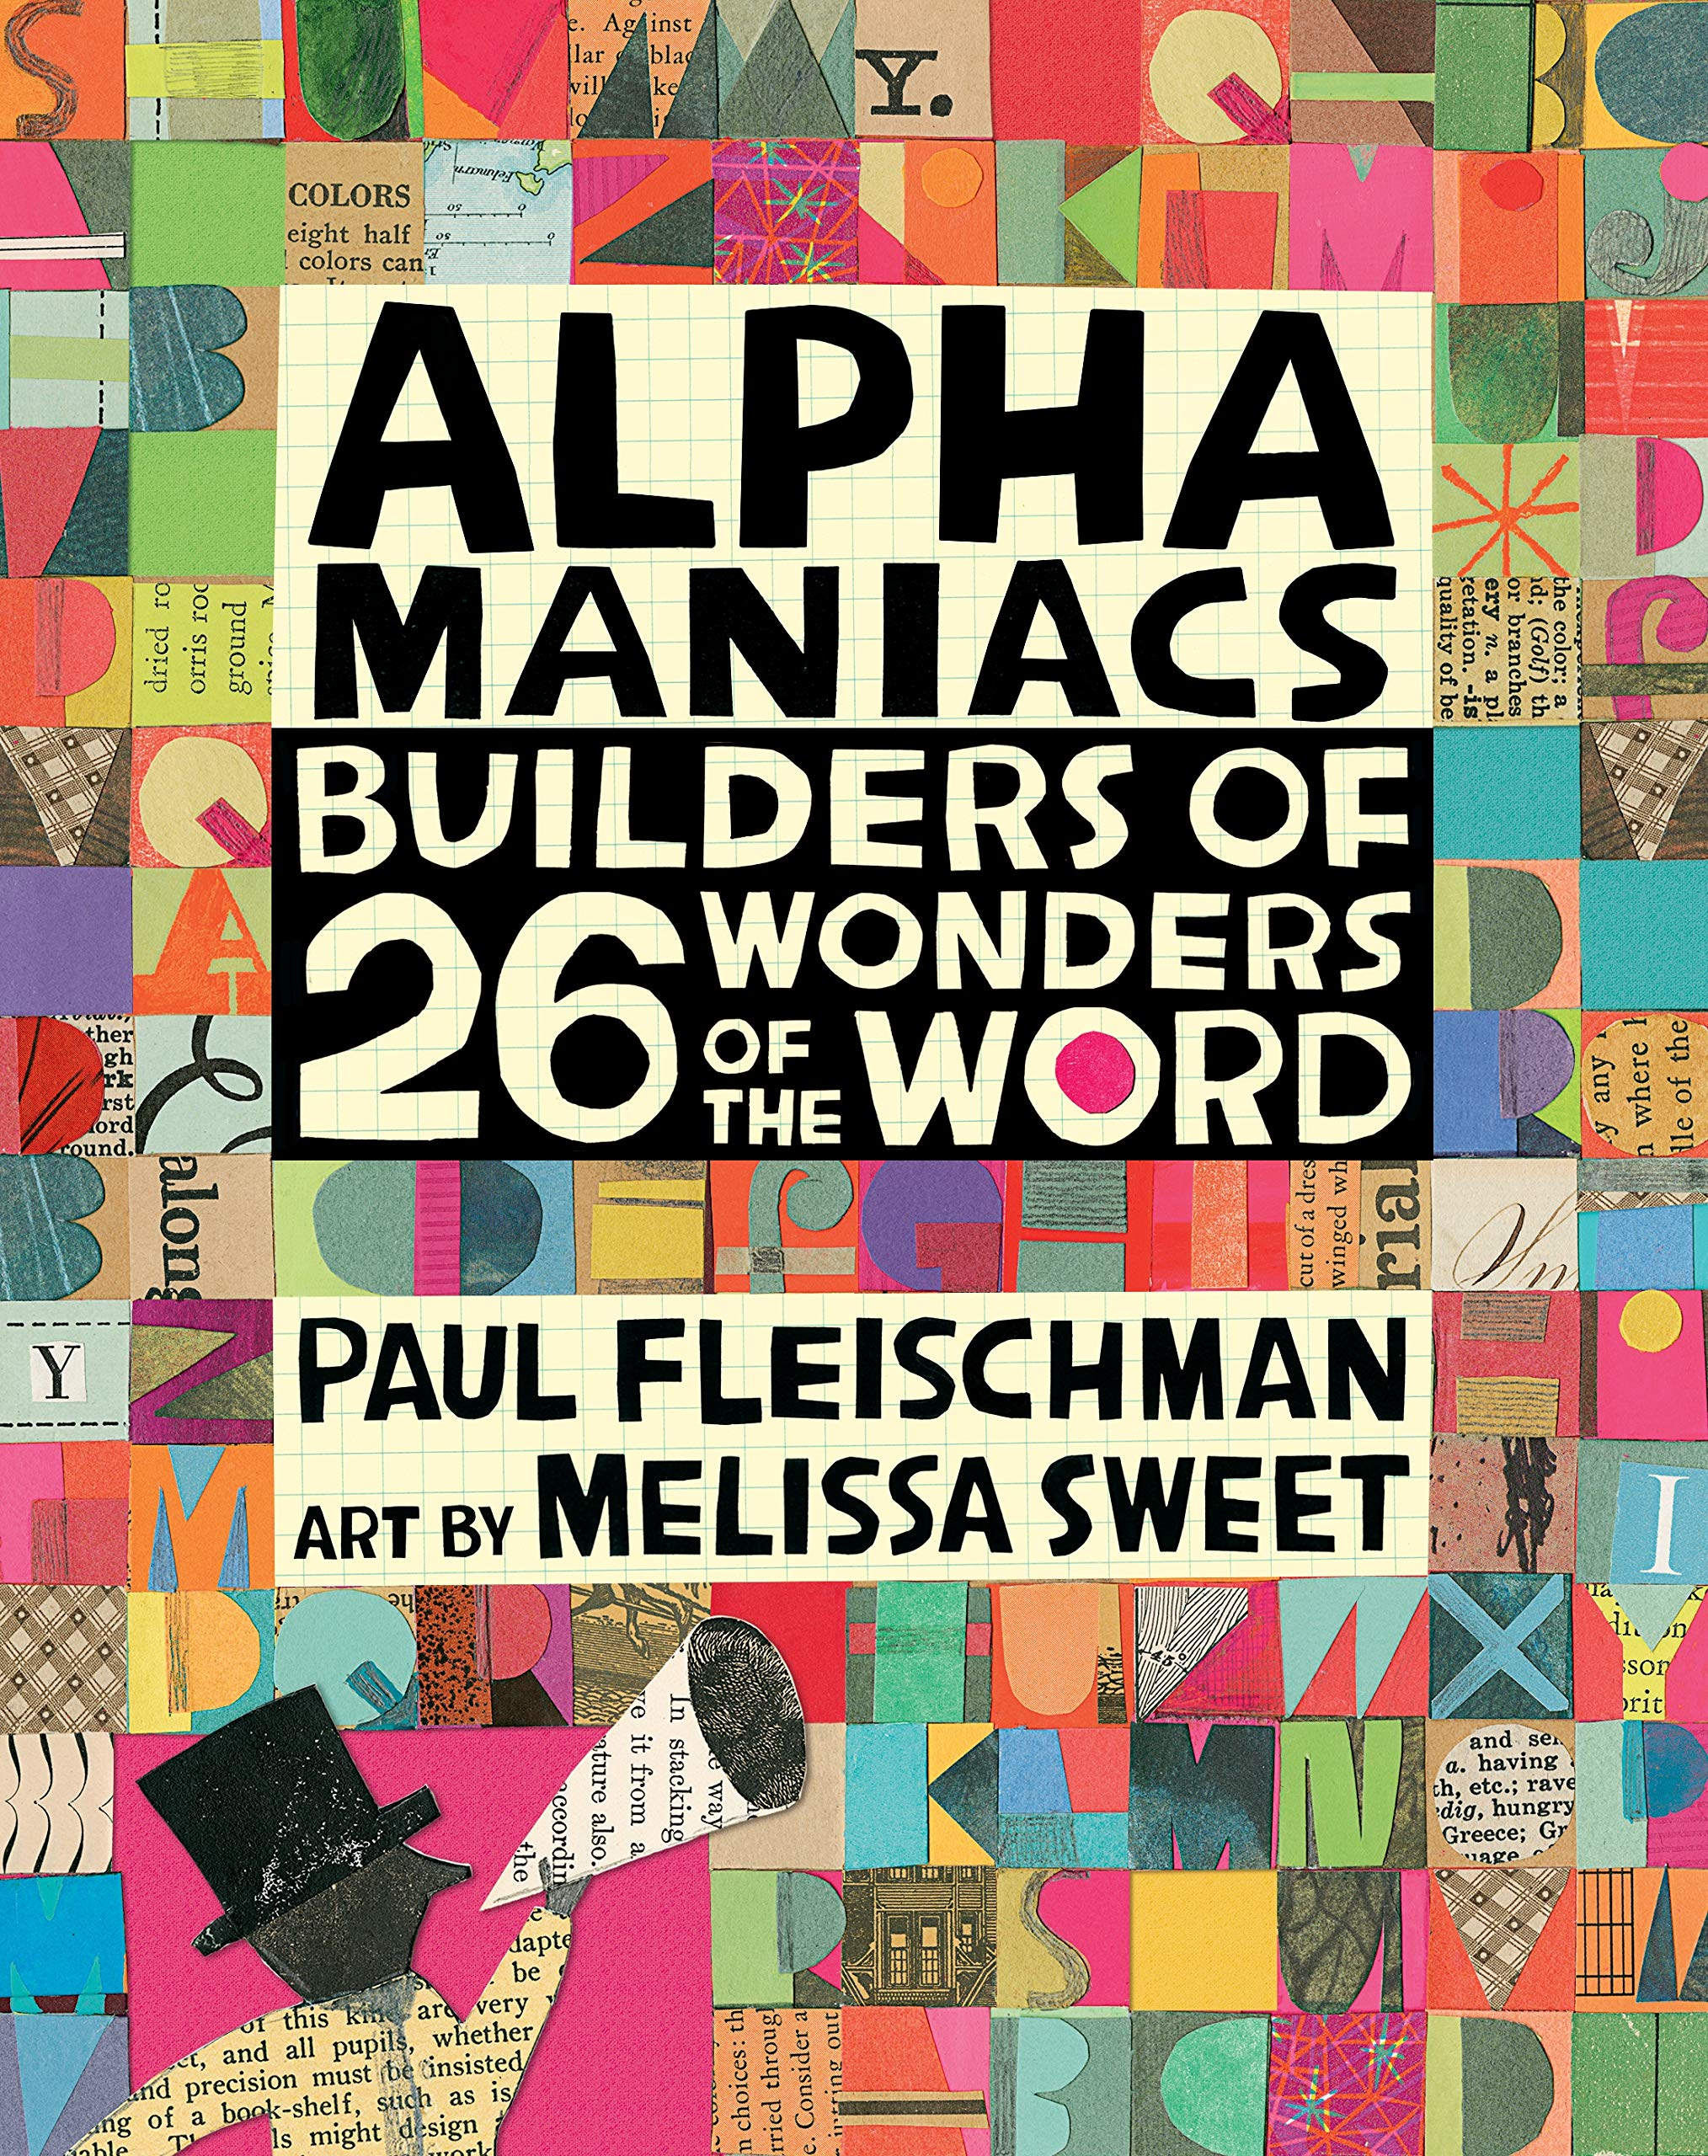 Alphamaniacs: Builders of 26 Wonders of the World